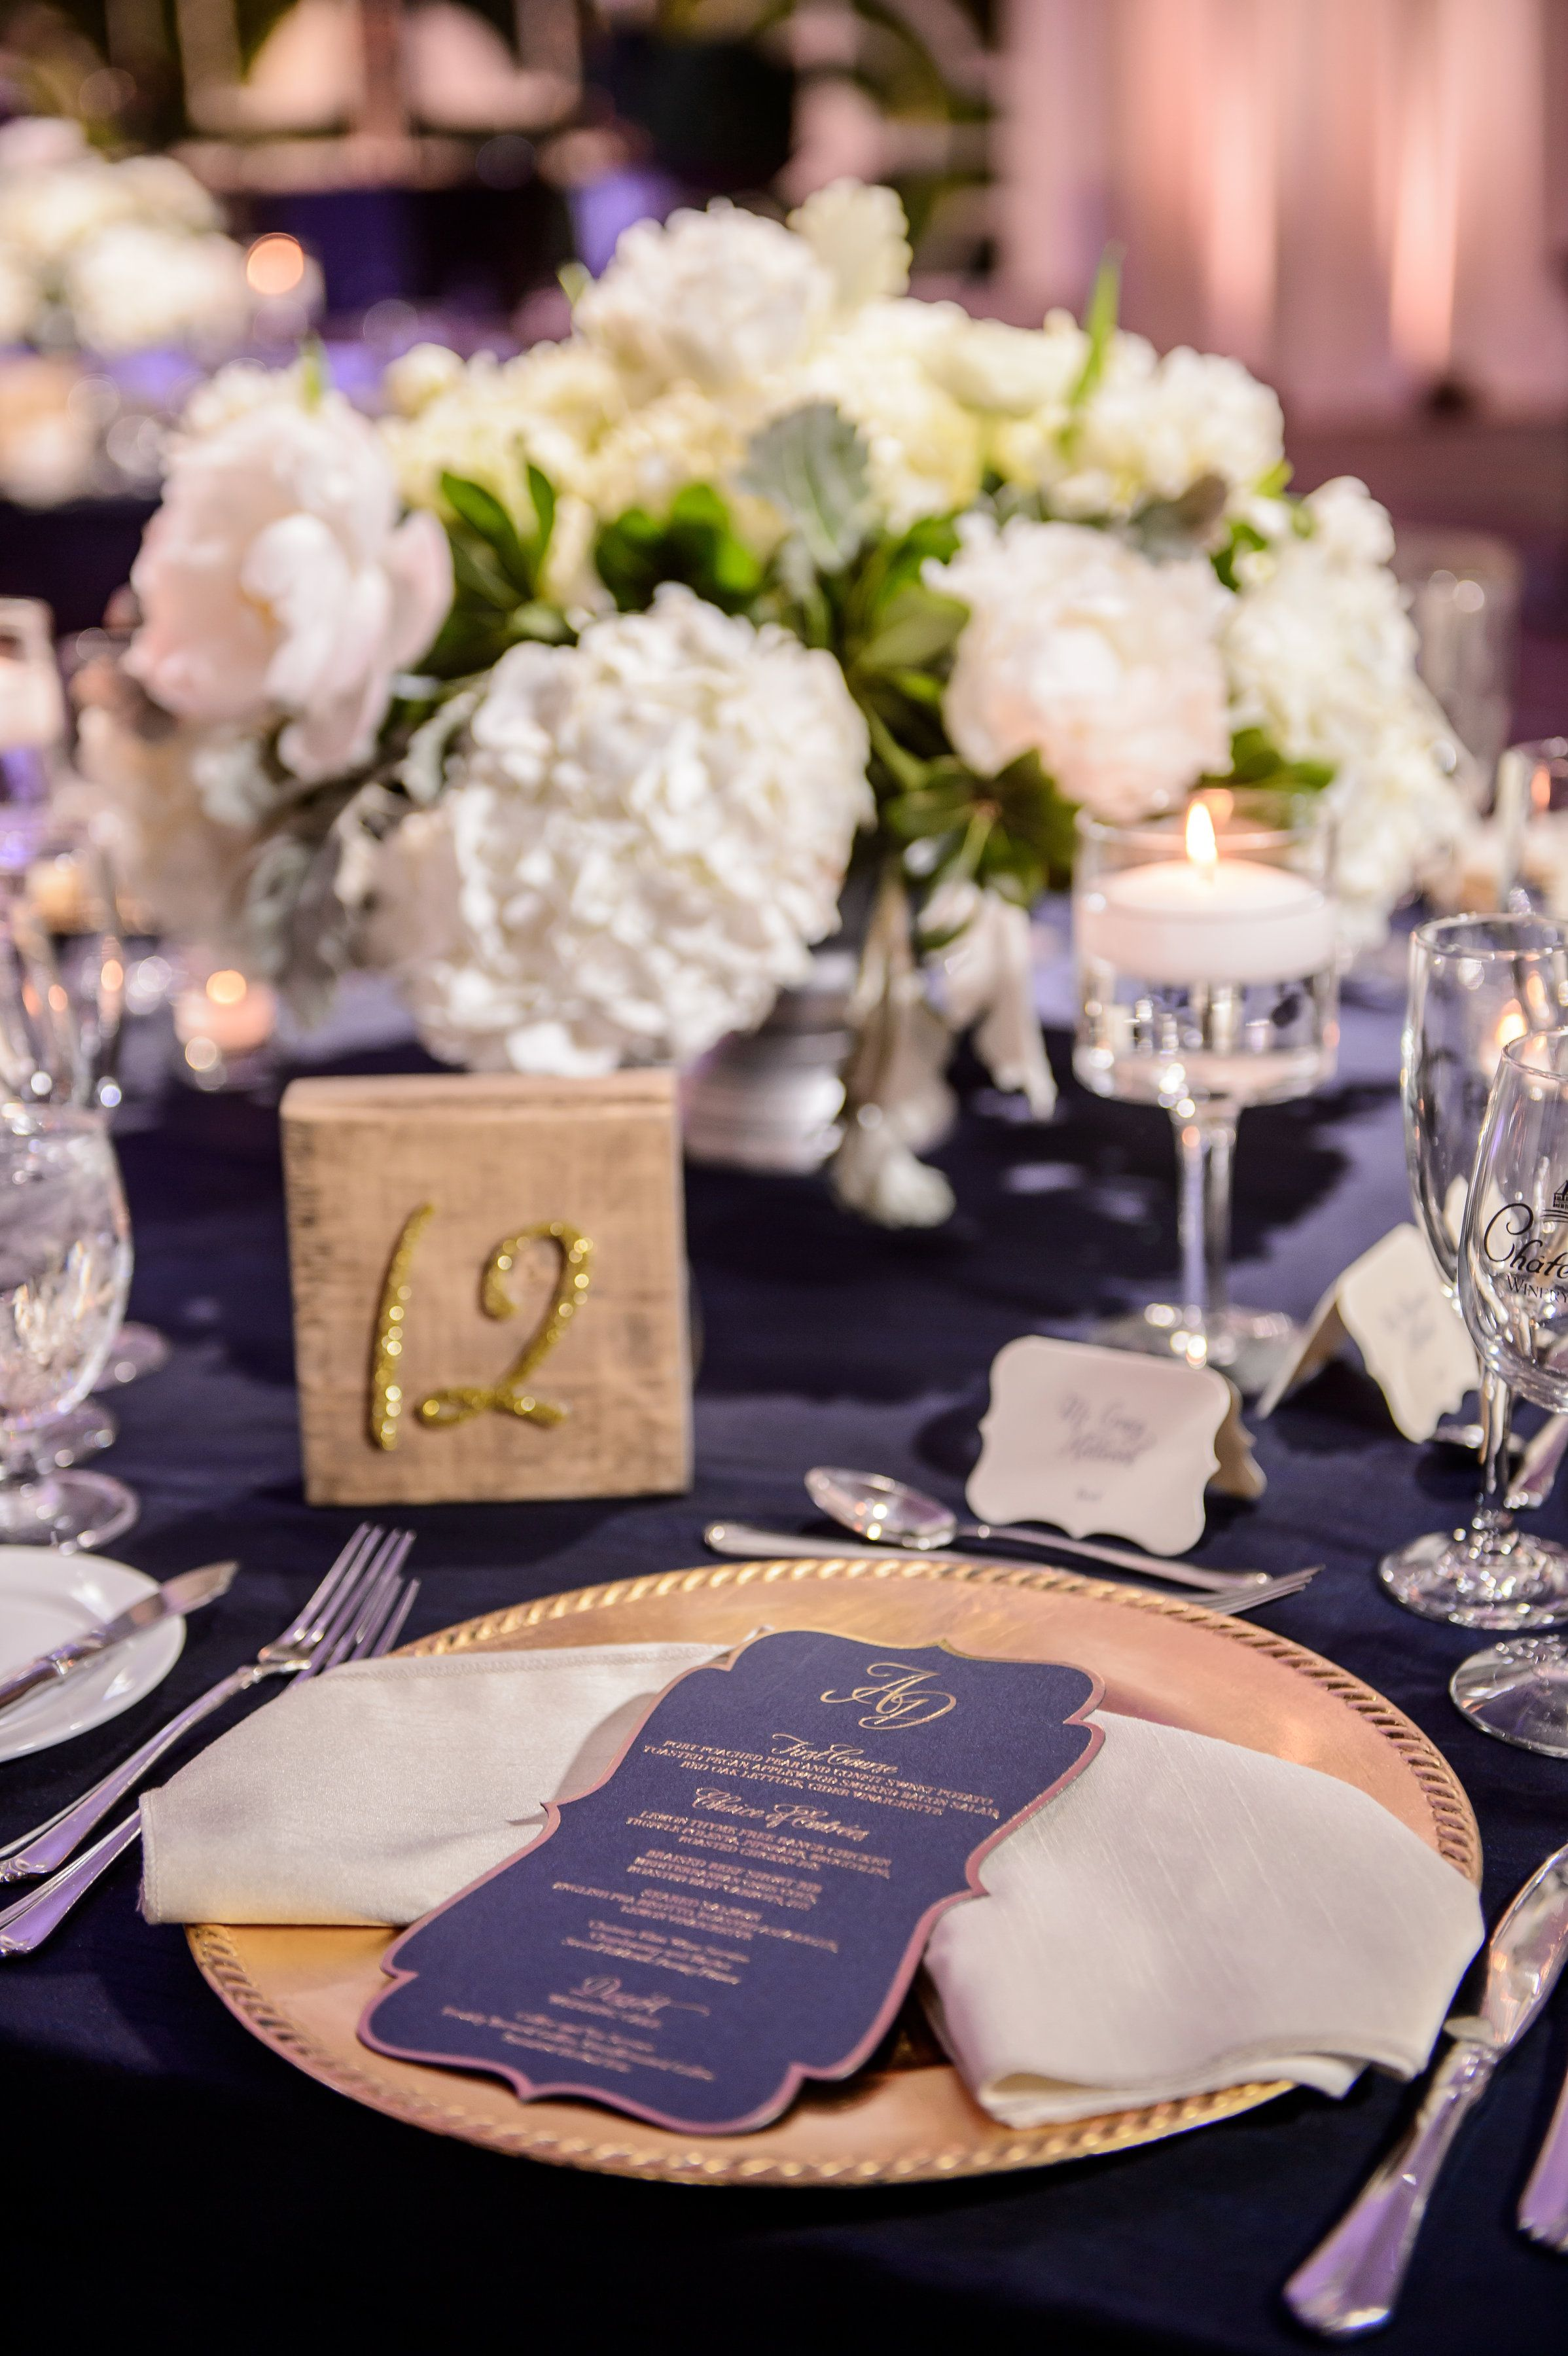 Over the top wedding decorations  Wedding reception table decor designed by Edge Design Group featured